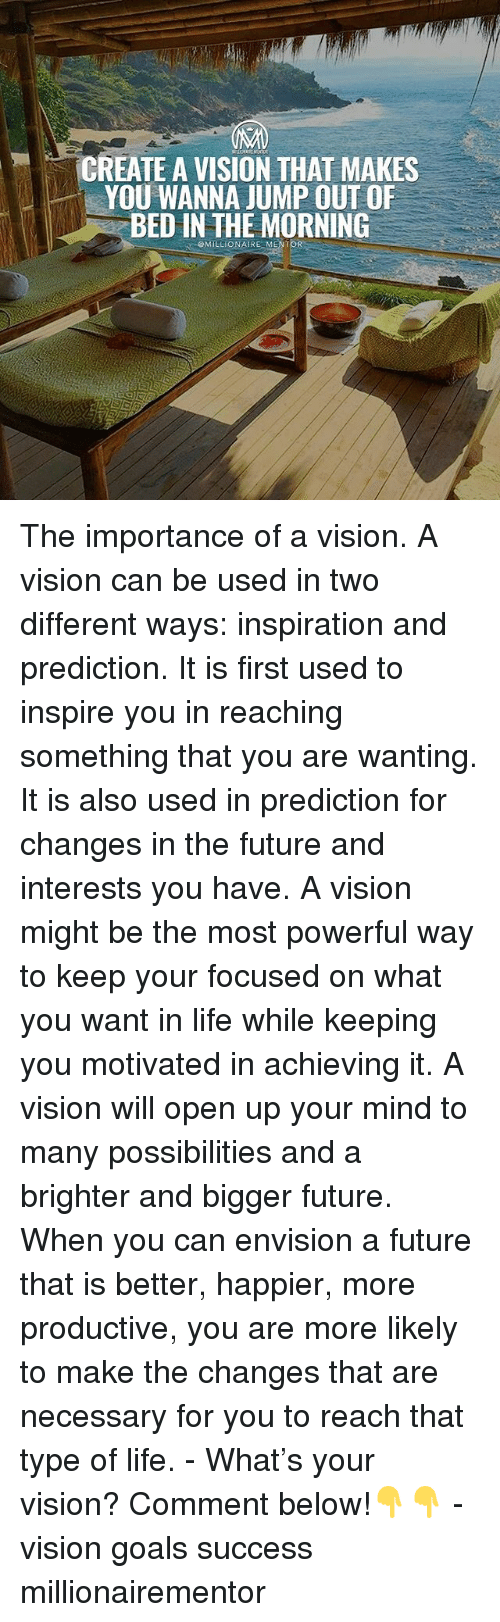 Future, Goals, and Life: CREATE A VISION THAT MAKES  YOU WANNA JUMP OUT OF  BED IN THE MORNING  QMILLIONAIRE MENTOR The importance of a vision. A vision can be used in two different ways: inspiration and prediction. It is first used to inspire you in reaching something that you are wanting. It is also used in prediction for changes in the future and interests you have. A vision might be the most powerful way to keep your focused on what you want in life while keeping you motivated in achieving it. A vision will open up your mind to many possibilities and a brighter and bigger future. When you can envision a future that is better, happier, more productive, you are more likely to make the changes that are necessary for you to reach that type of life. - What's your vision? Comment below!👇👇 - vision goals success millionairementor